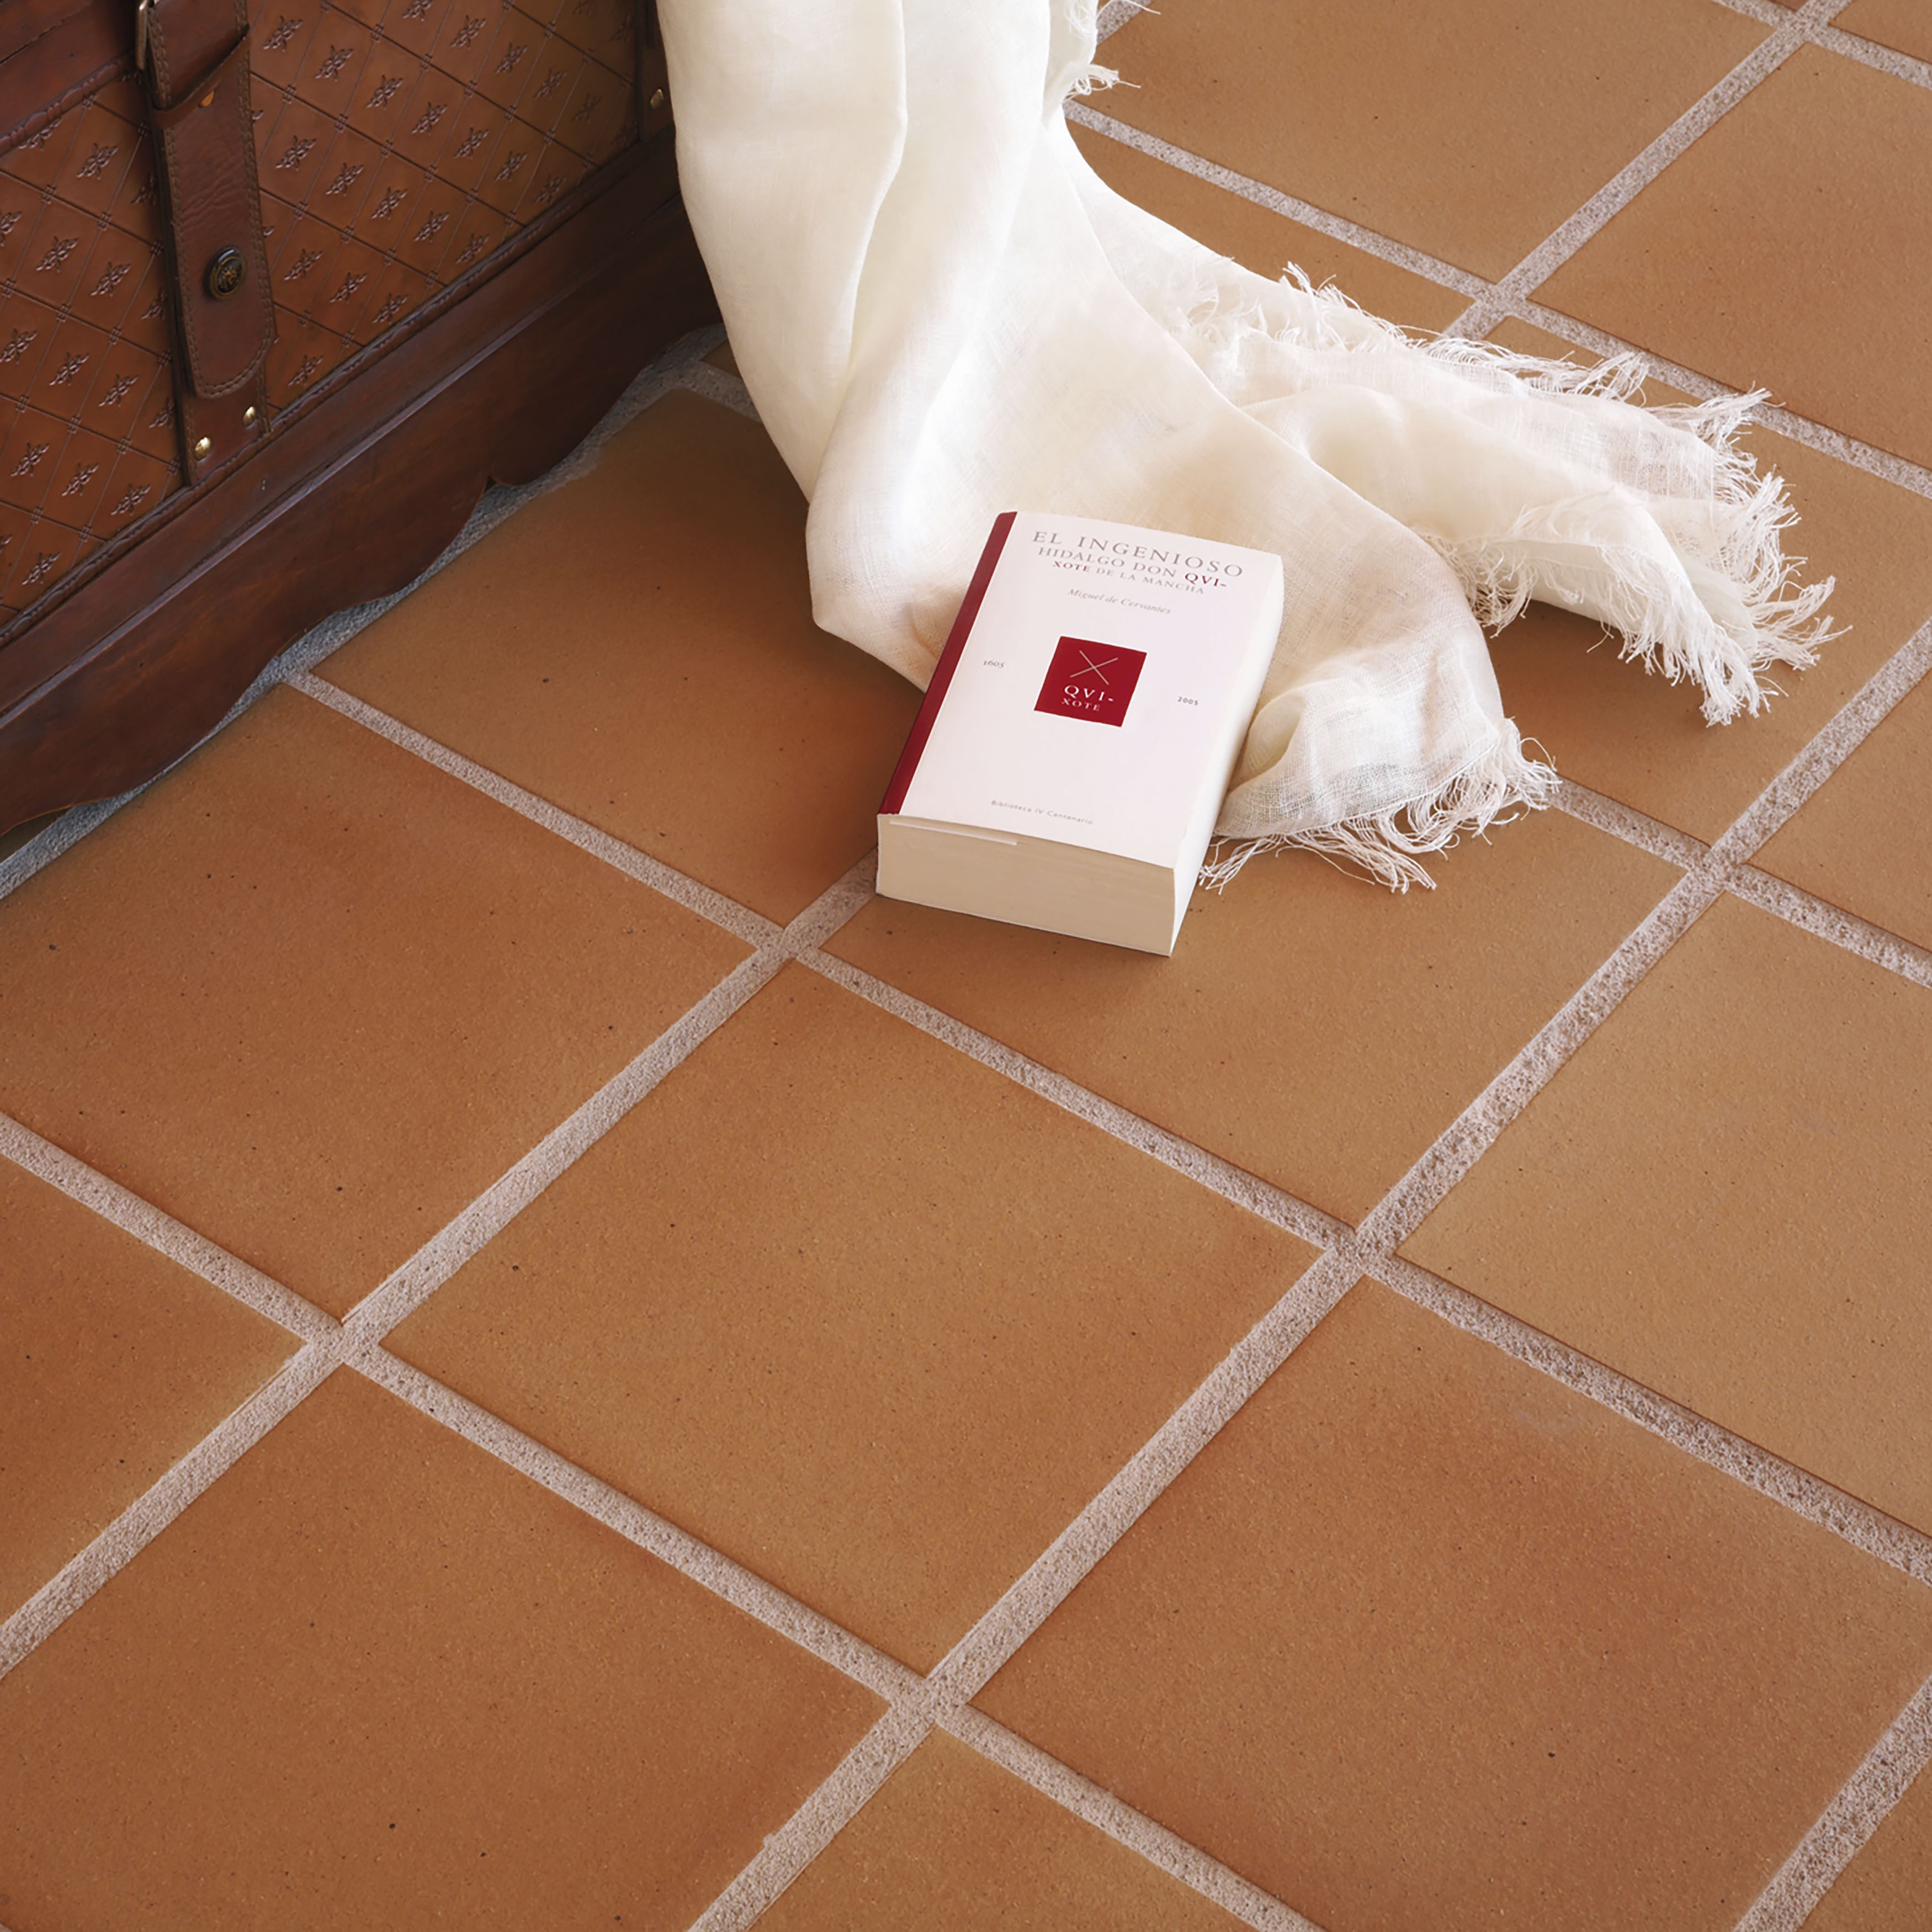 Shop Somertile 9625x9625 Inch Clinker Natural Quarry Floor And